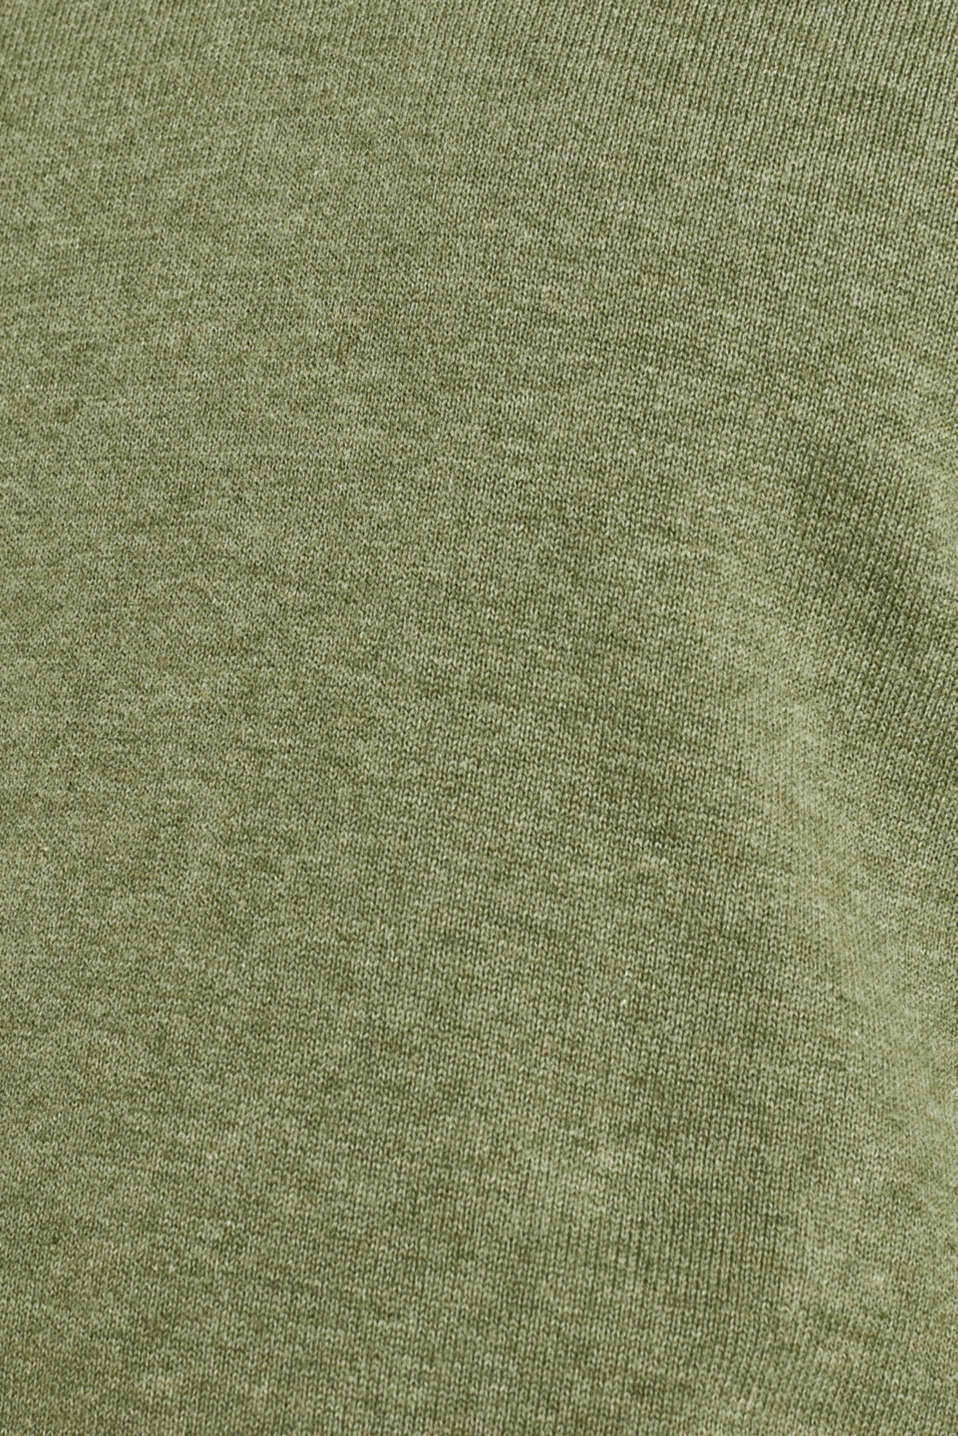 Basic jumper in 100% cotton, LIGHT KHAKI 5, detail image number 4